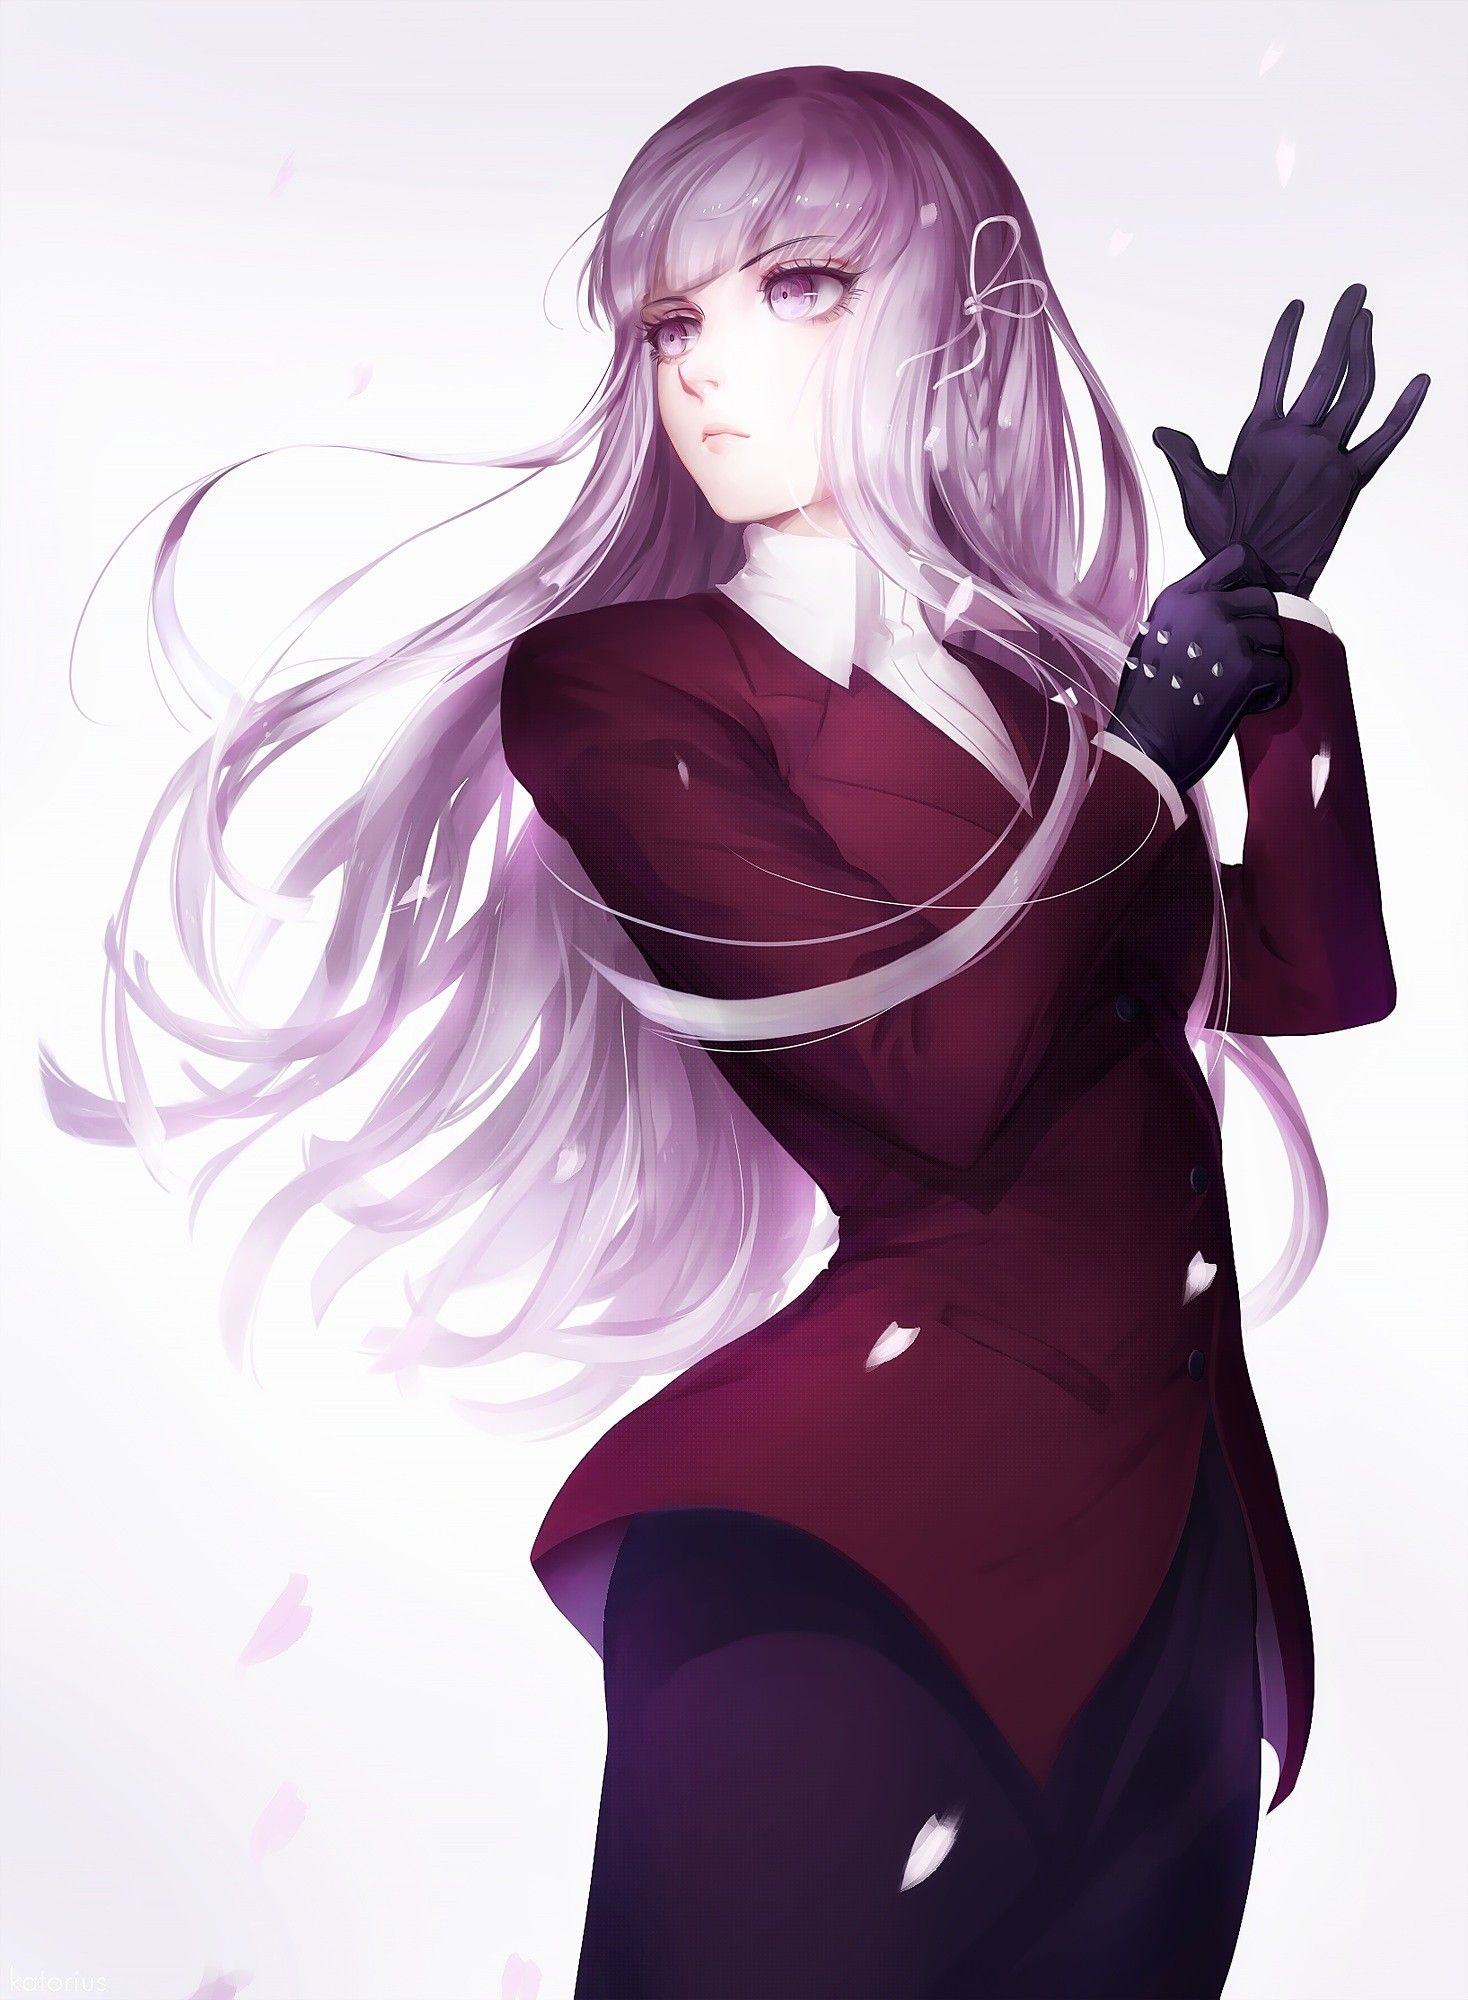 Anime 1468x2000 anime anime girls danganronpa kirigiri kyouko long hair purple hair purple eyes